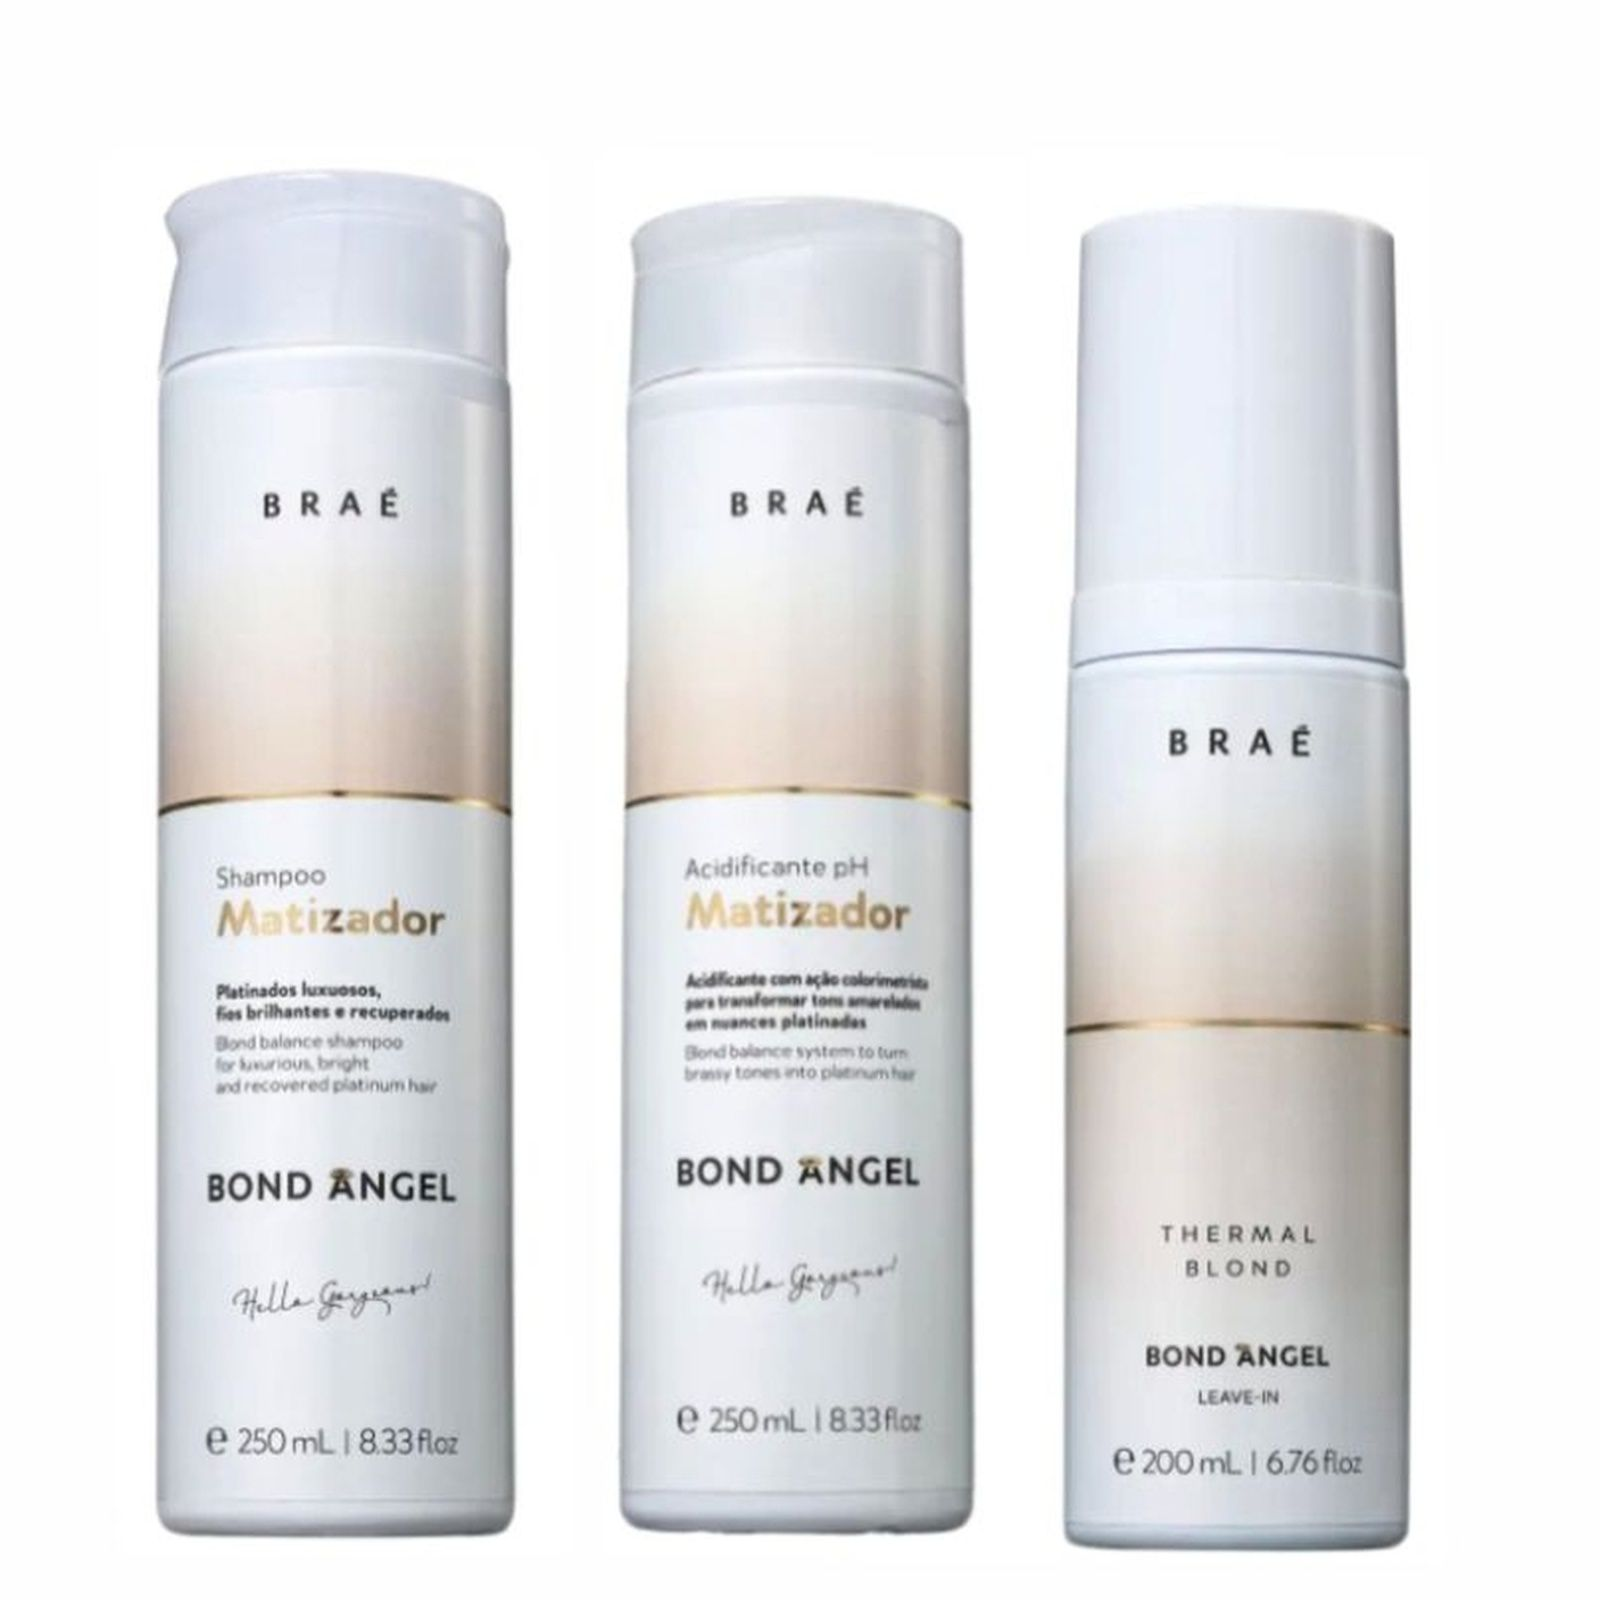 Shampoo Matizador, Ph Acidificante, Leave-in-Braé Bond Angel